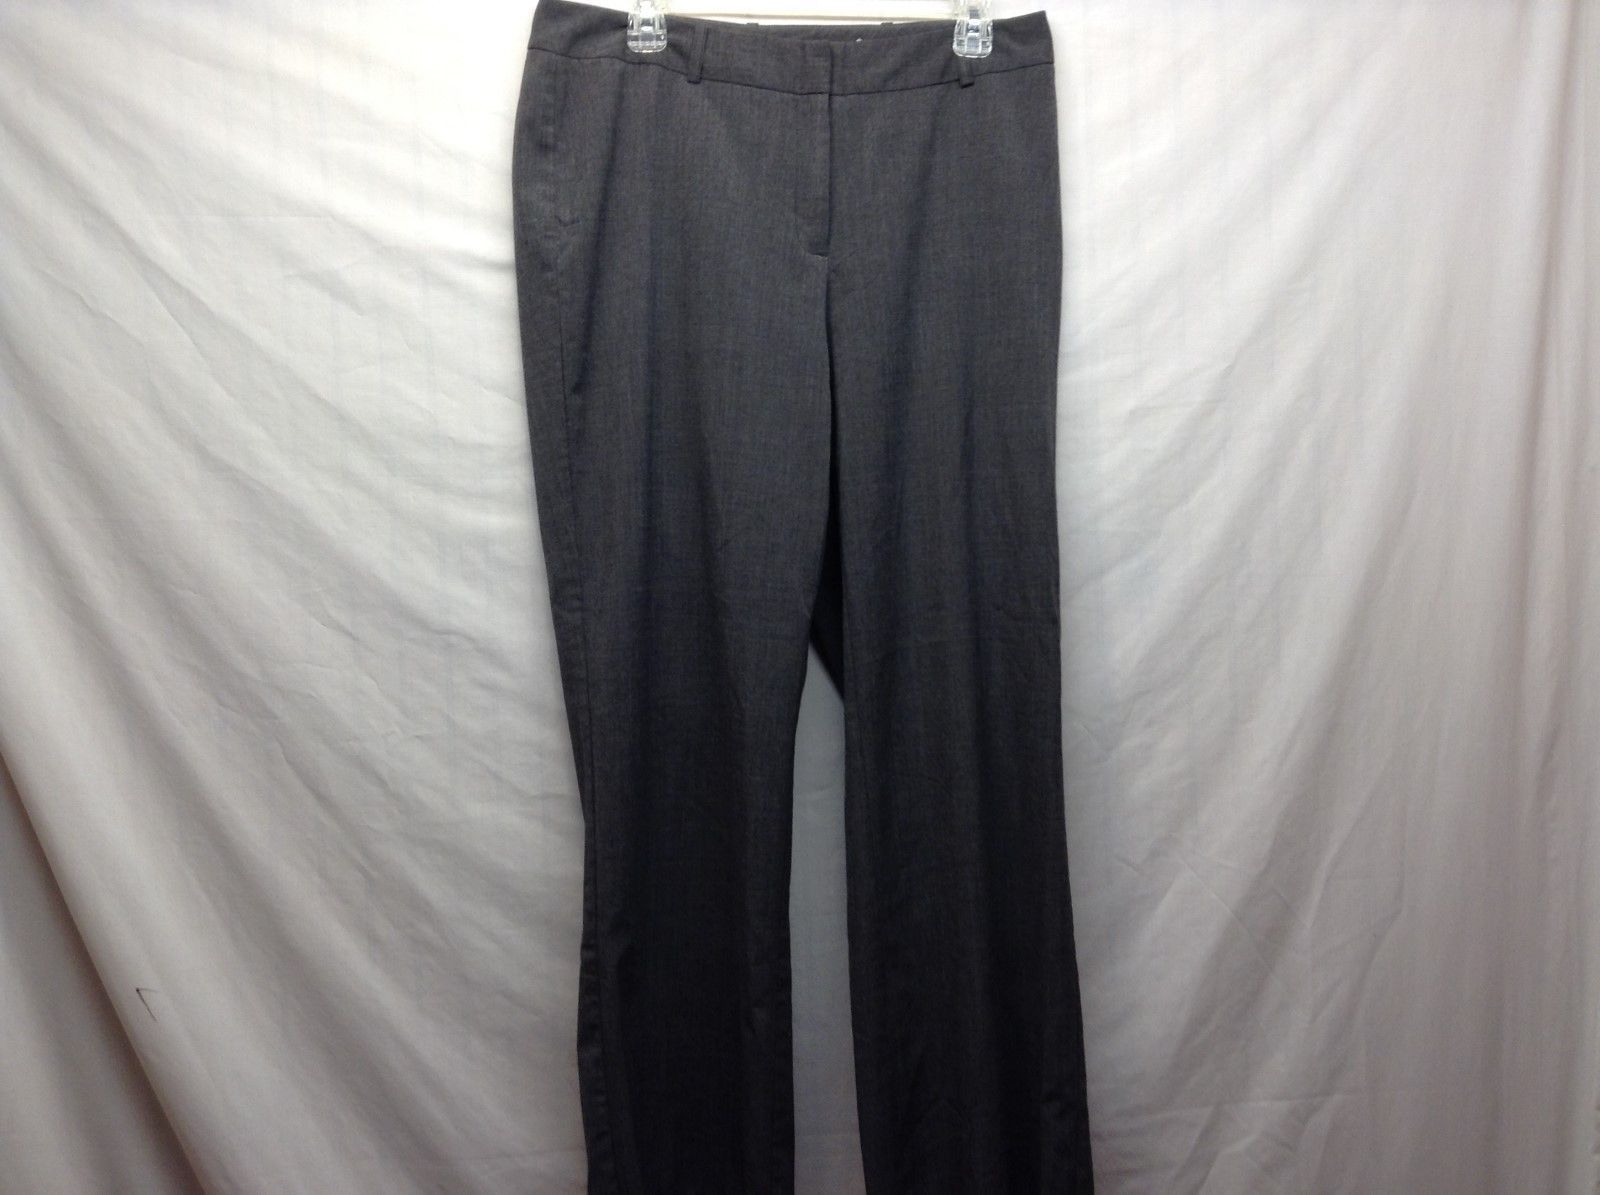 Worthington Ladies Slate Grey Slacks Curvy Fit Sz 12